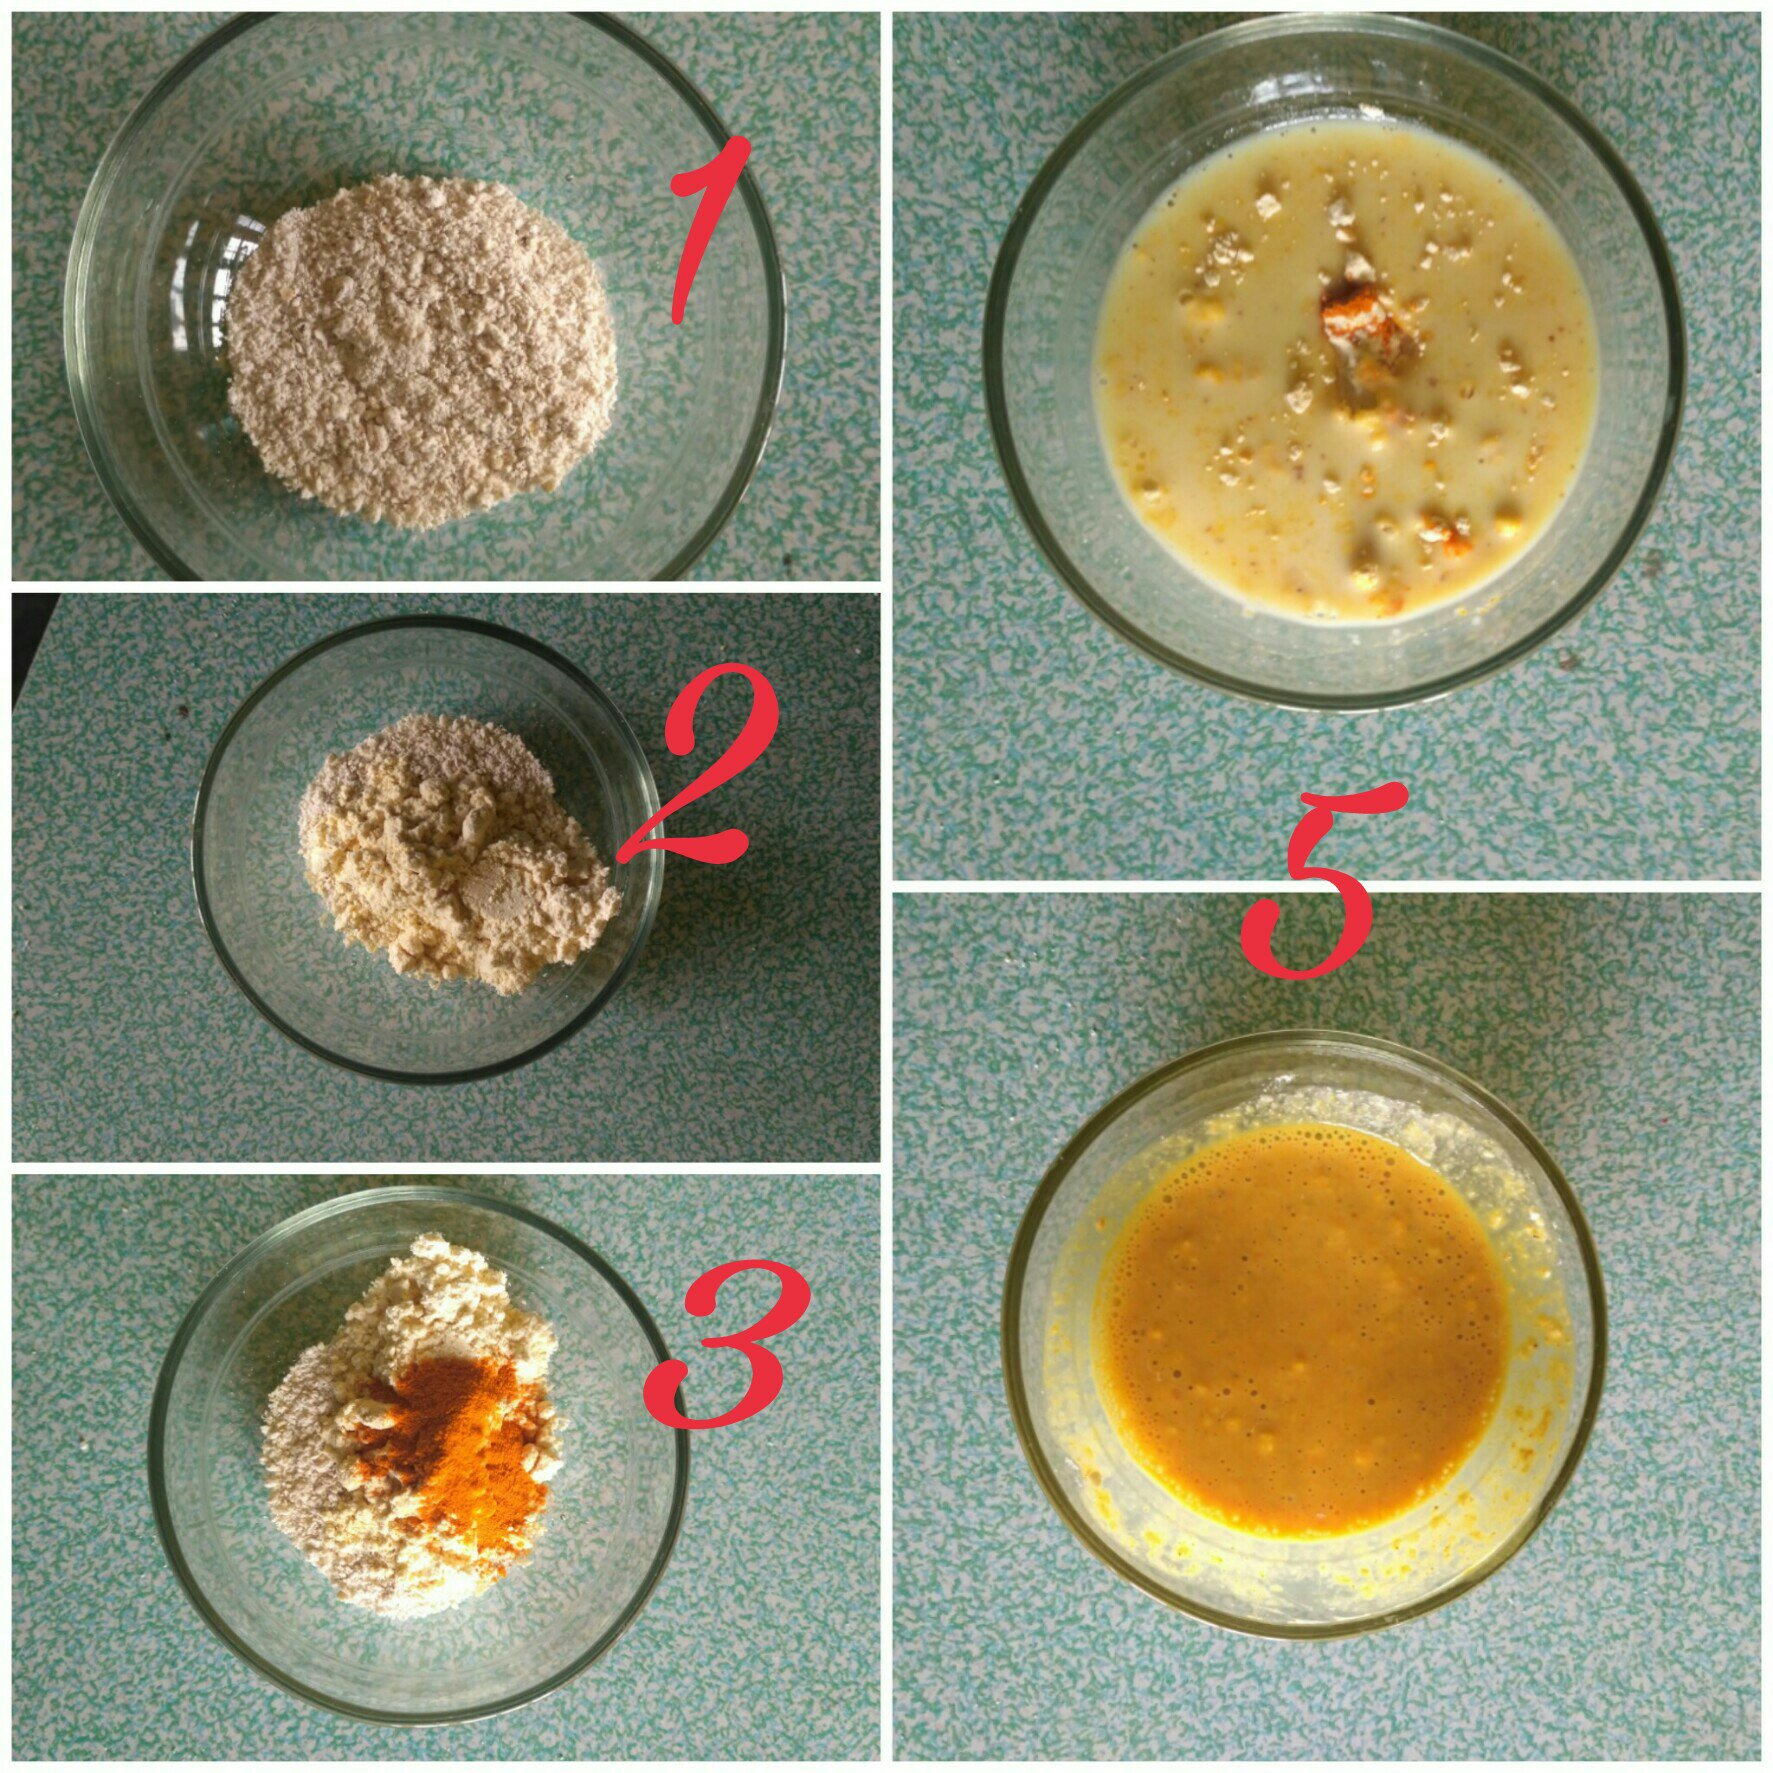 DIY Oatmeal Gram Flour And Turmeric Face Pack Cum Scrub